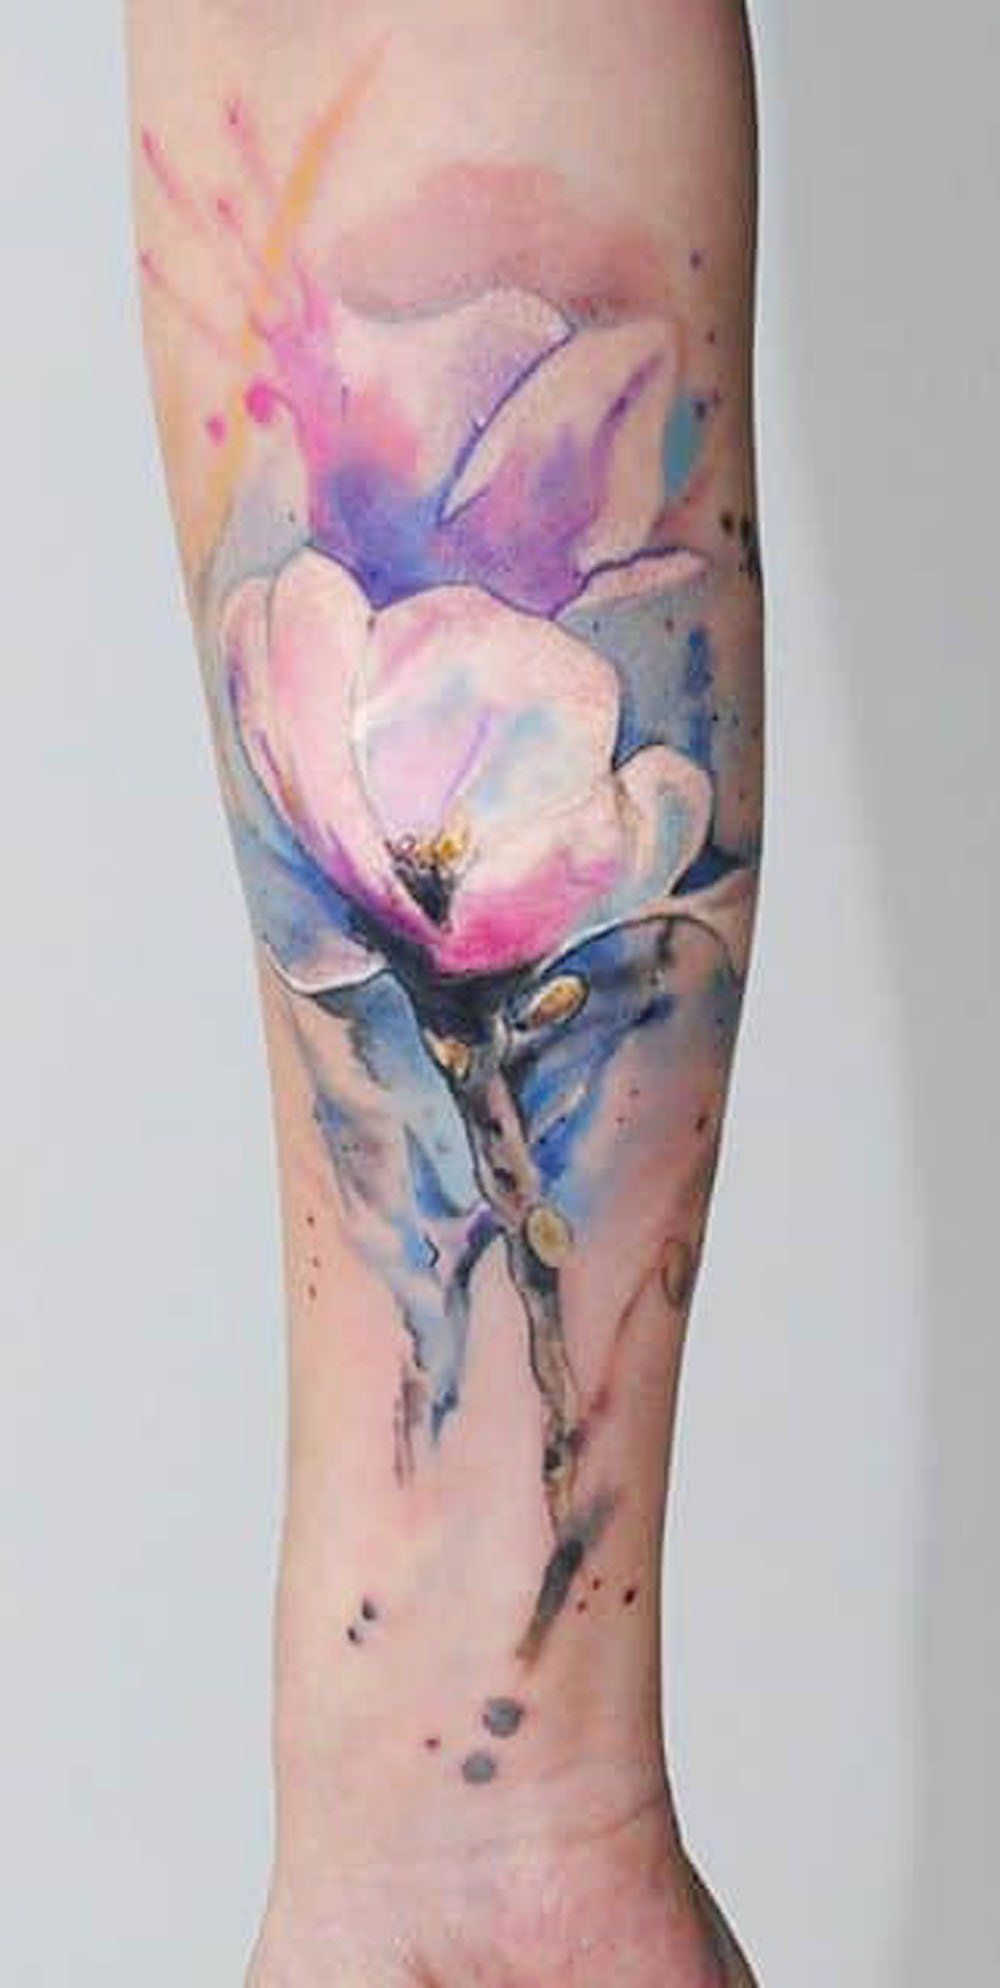 Beautiful watercolor jasmine flower forearm arm sleeve tattoo ideas beautiful watercolor jasmine flower forearm arm sleeve tattoo ideas for women ideas de tatuaje de manga de brazo de flor mybodiart izmirmasajfo